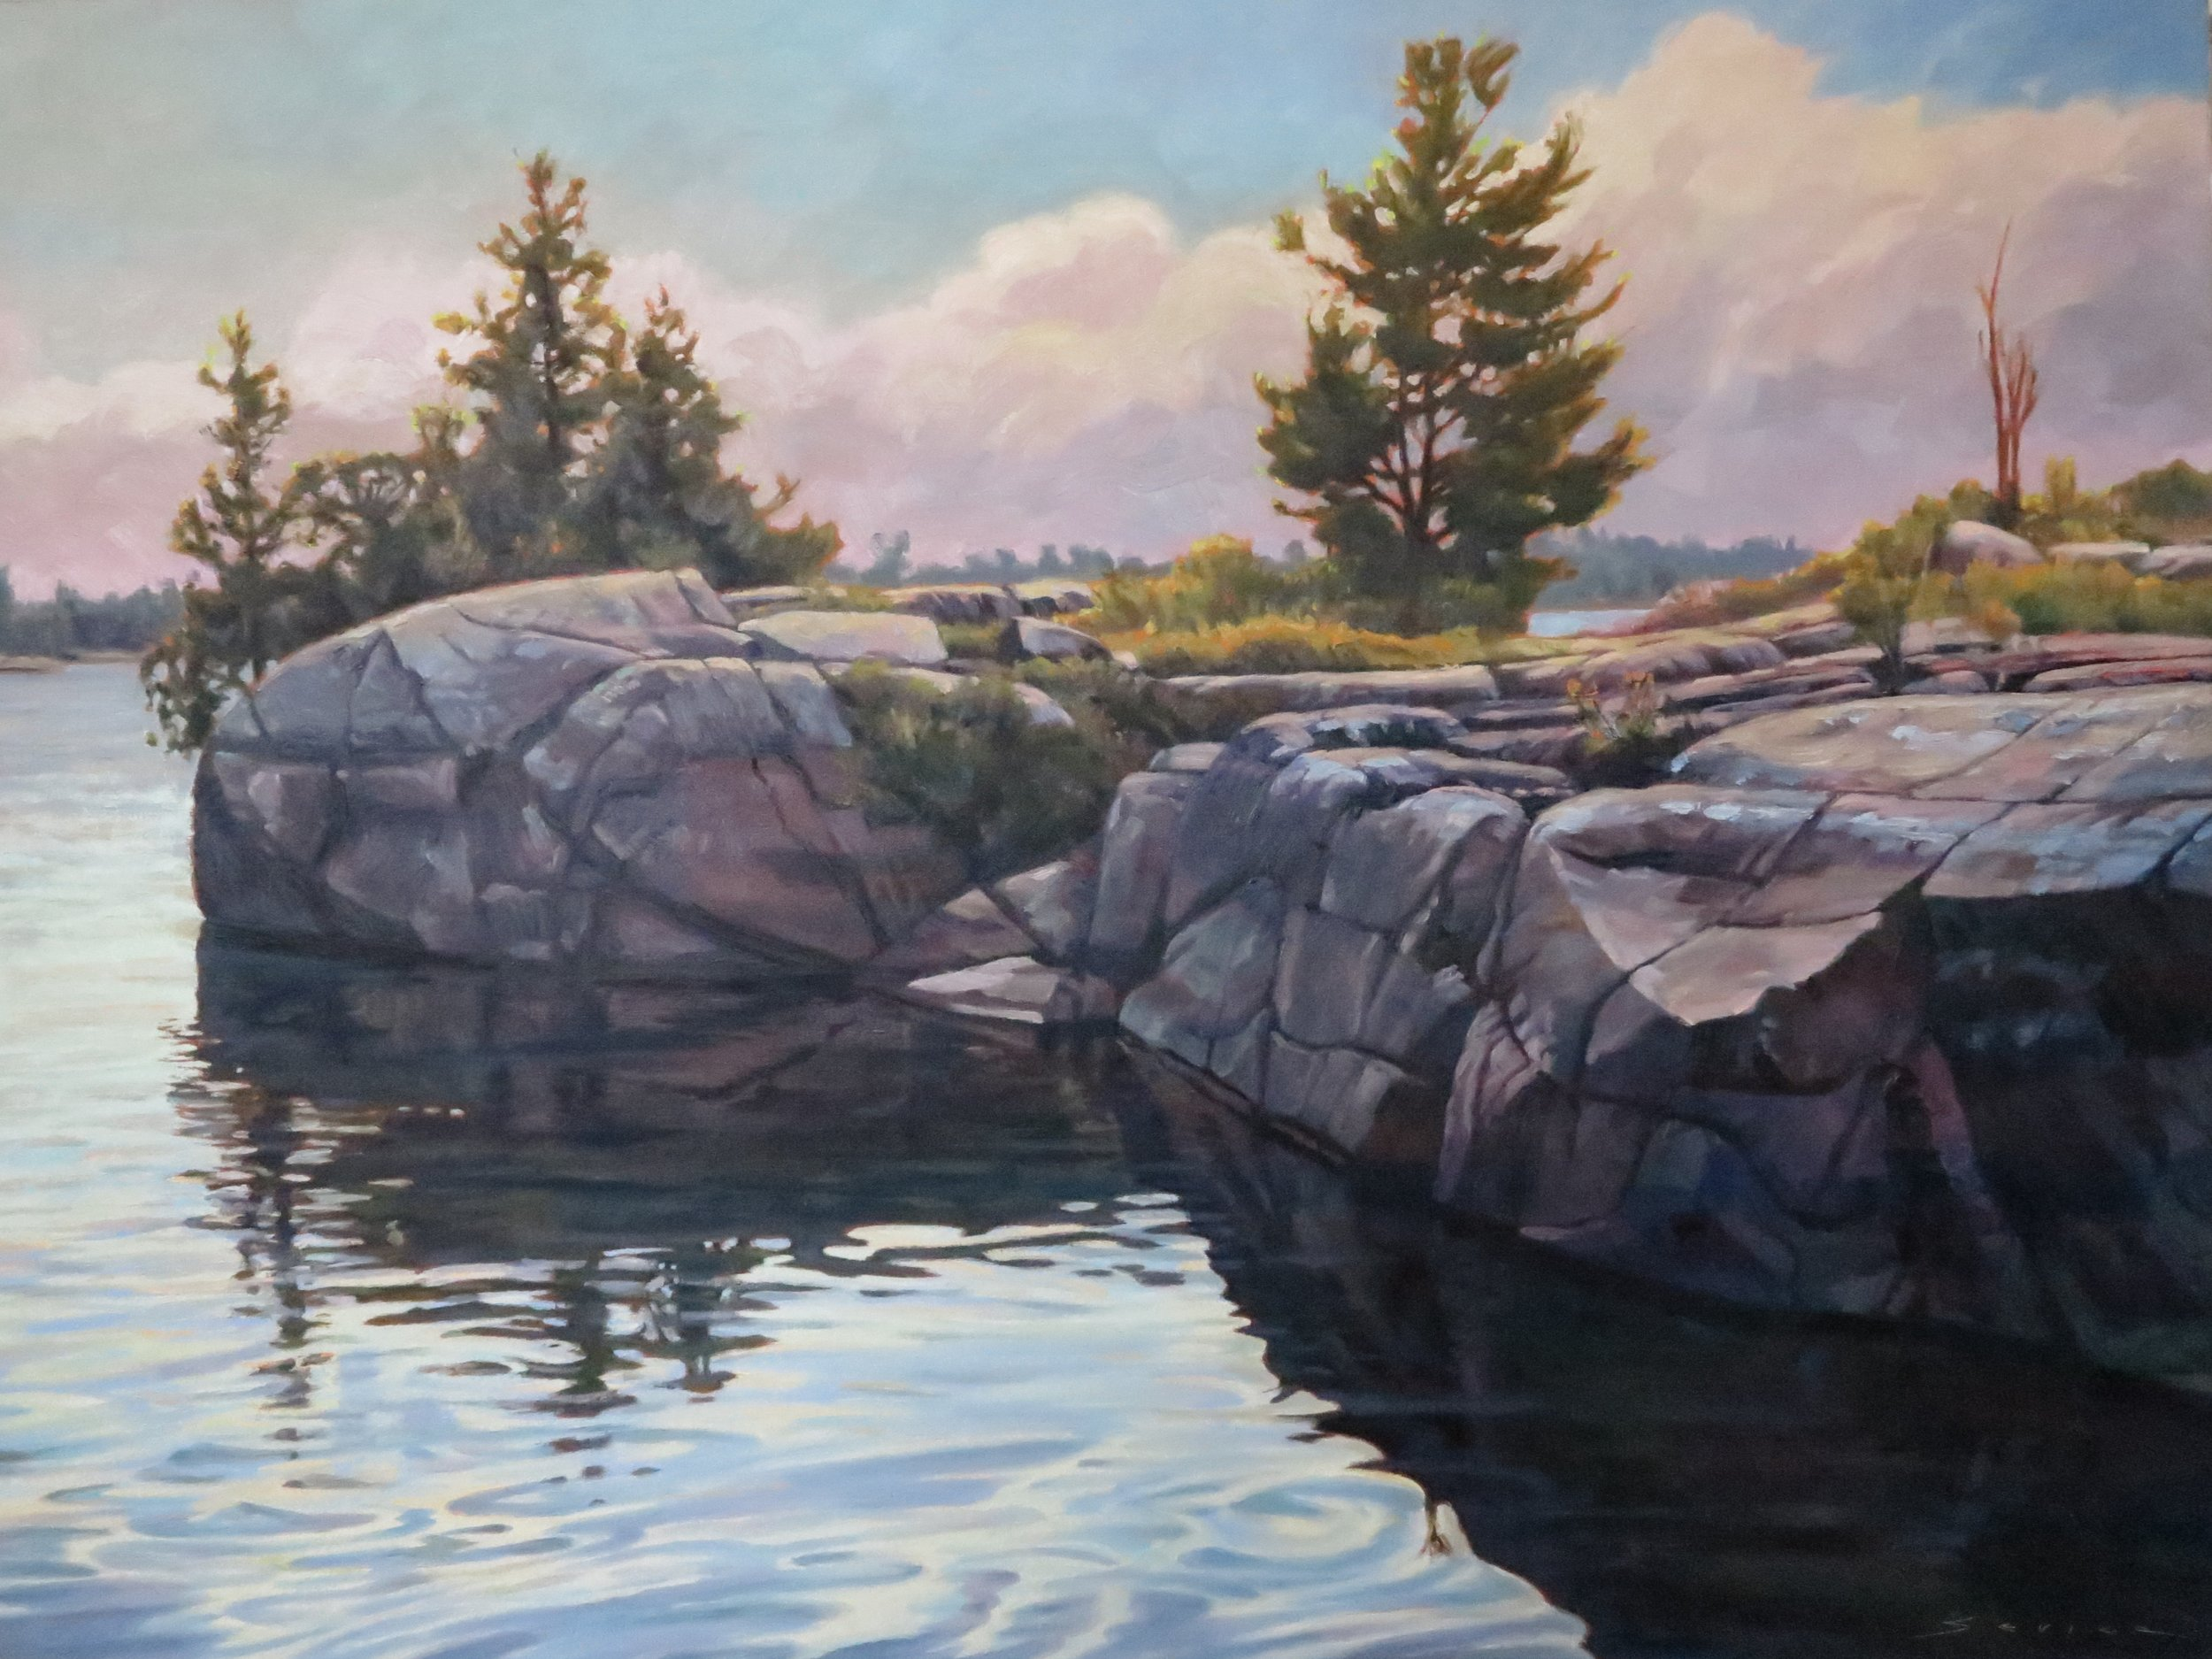 Georgian Bay Patterns, 30 x 40, oil